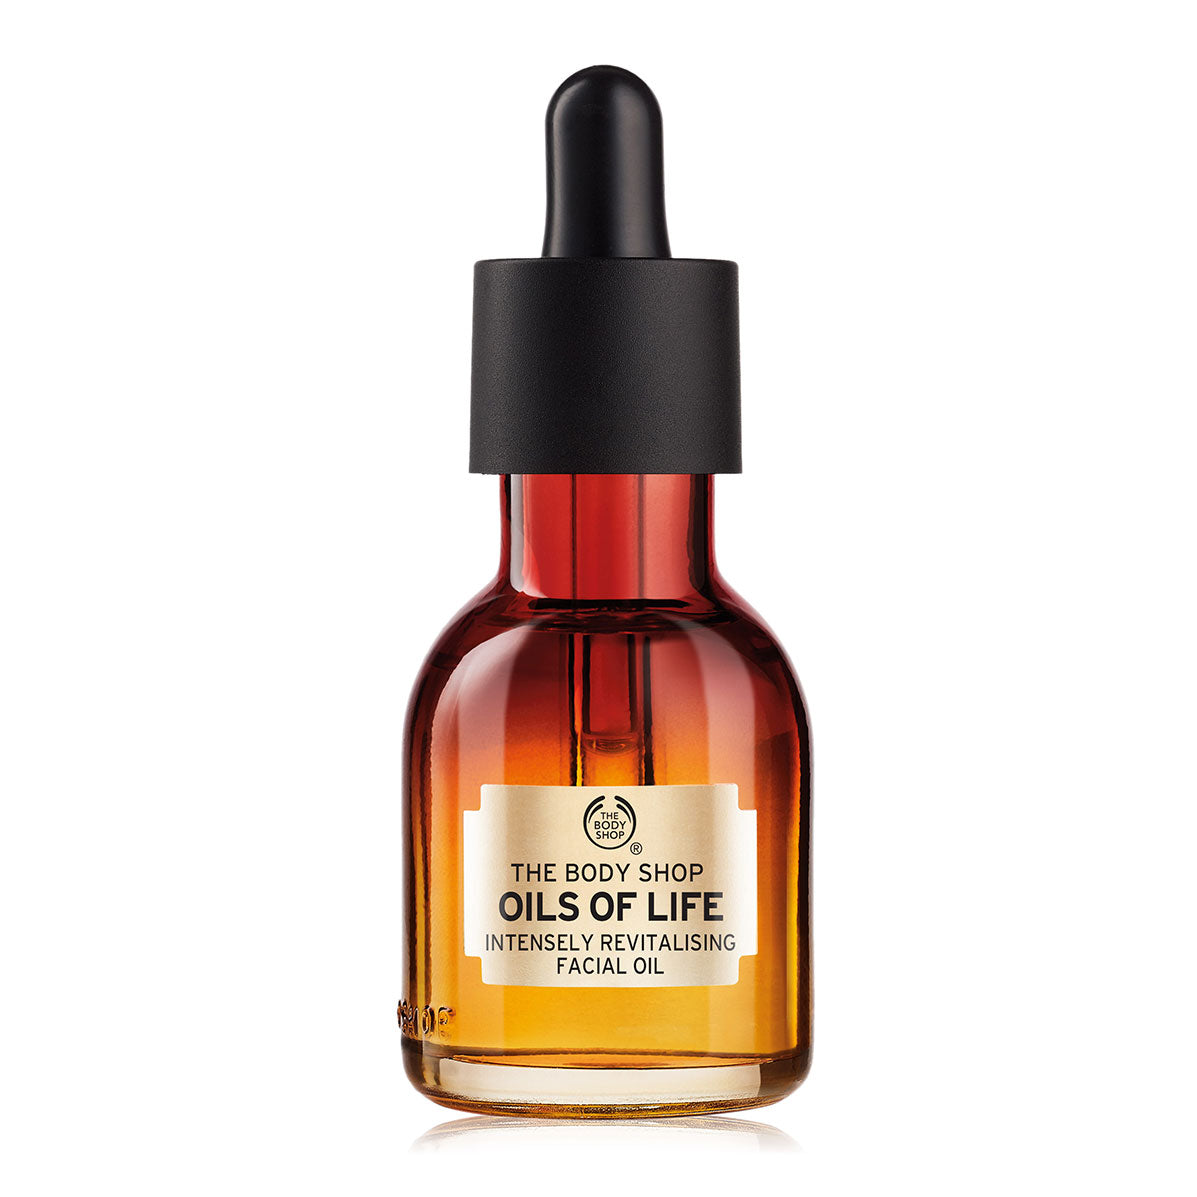 Oils of Life Intensely Revitalising Facial Oil